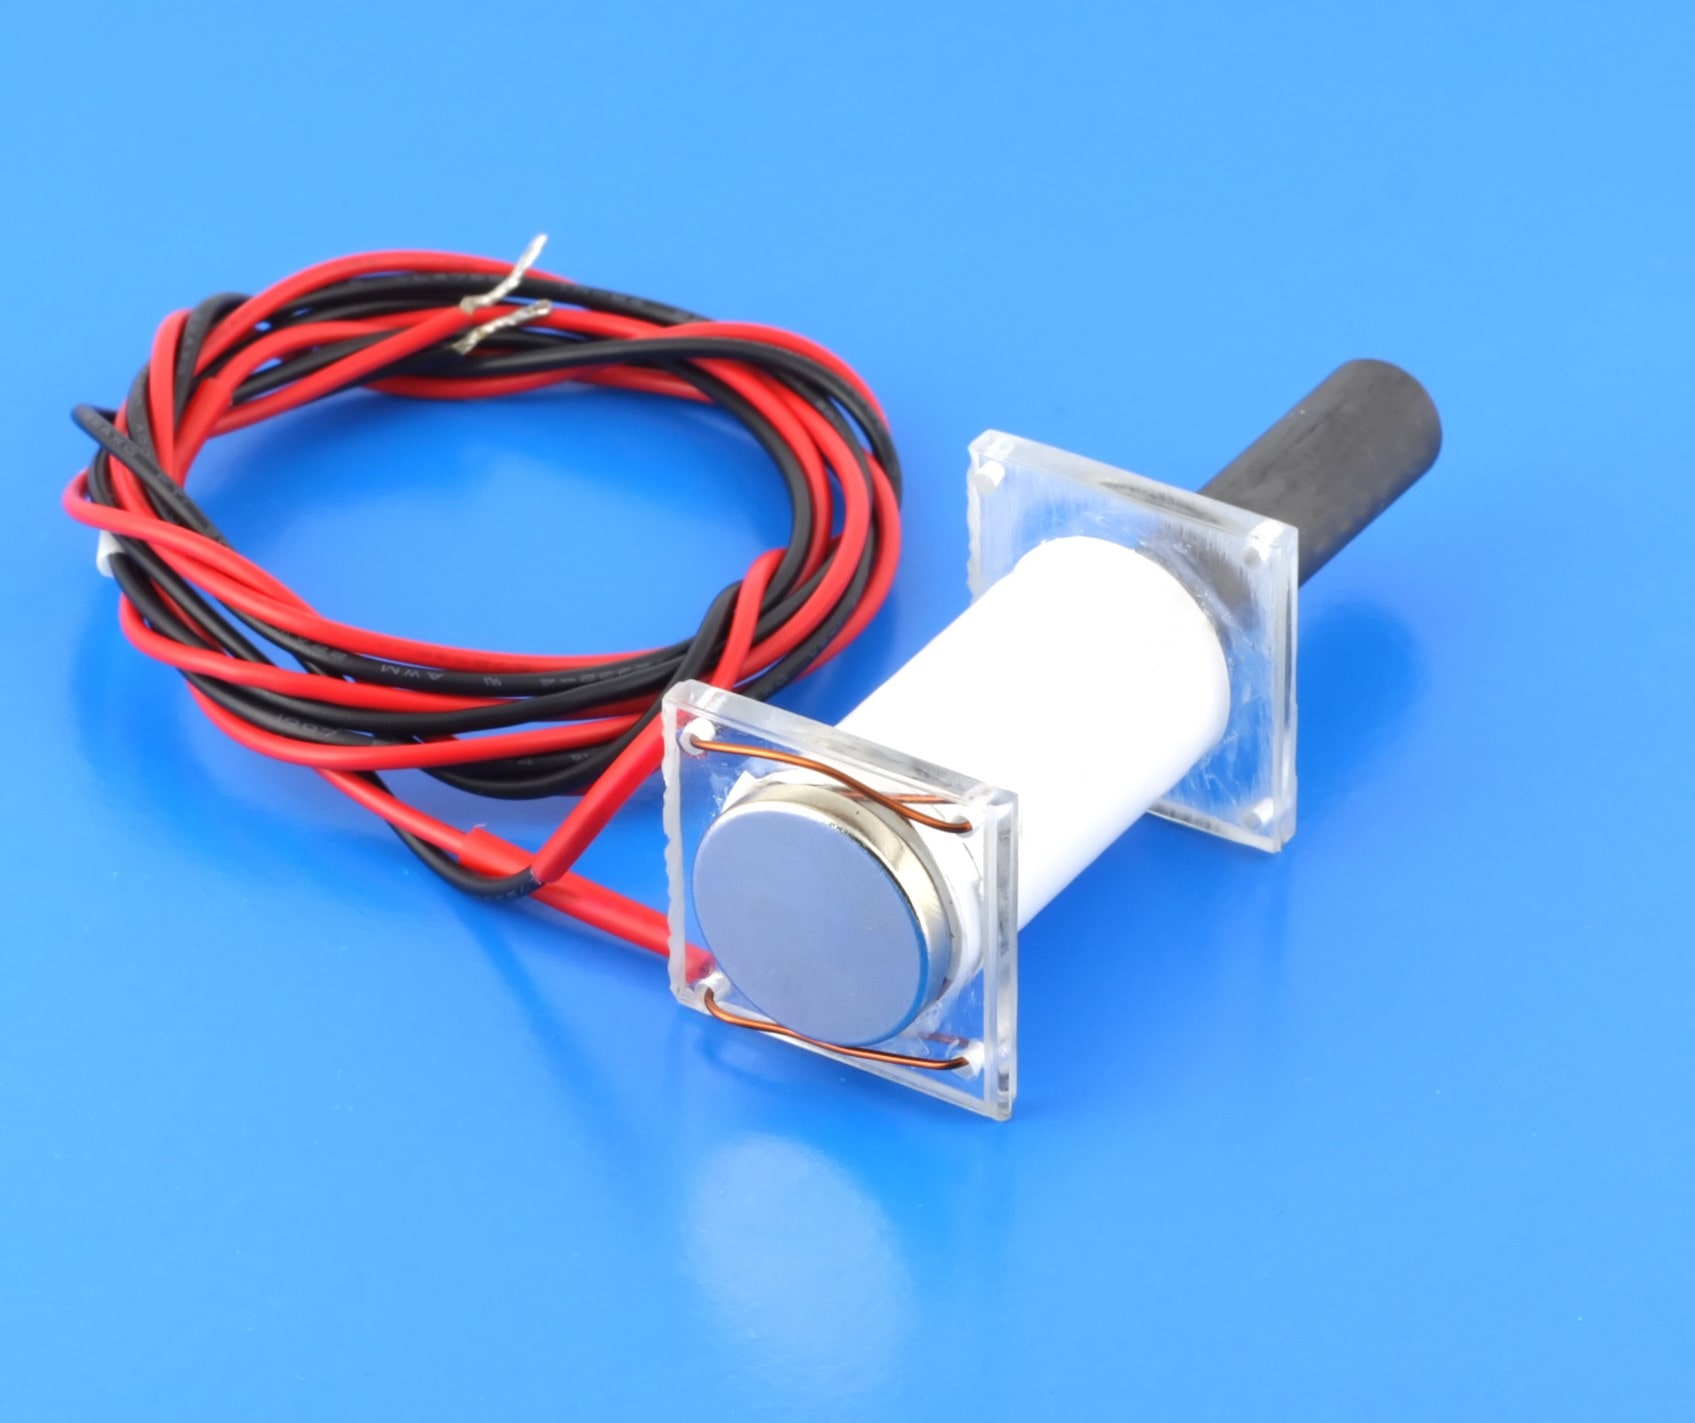 Image of a sensor on a blue table with black and red wires